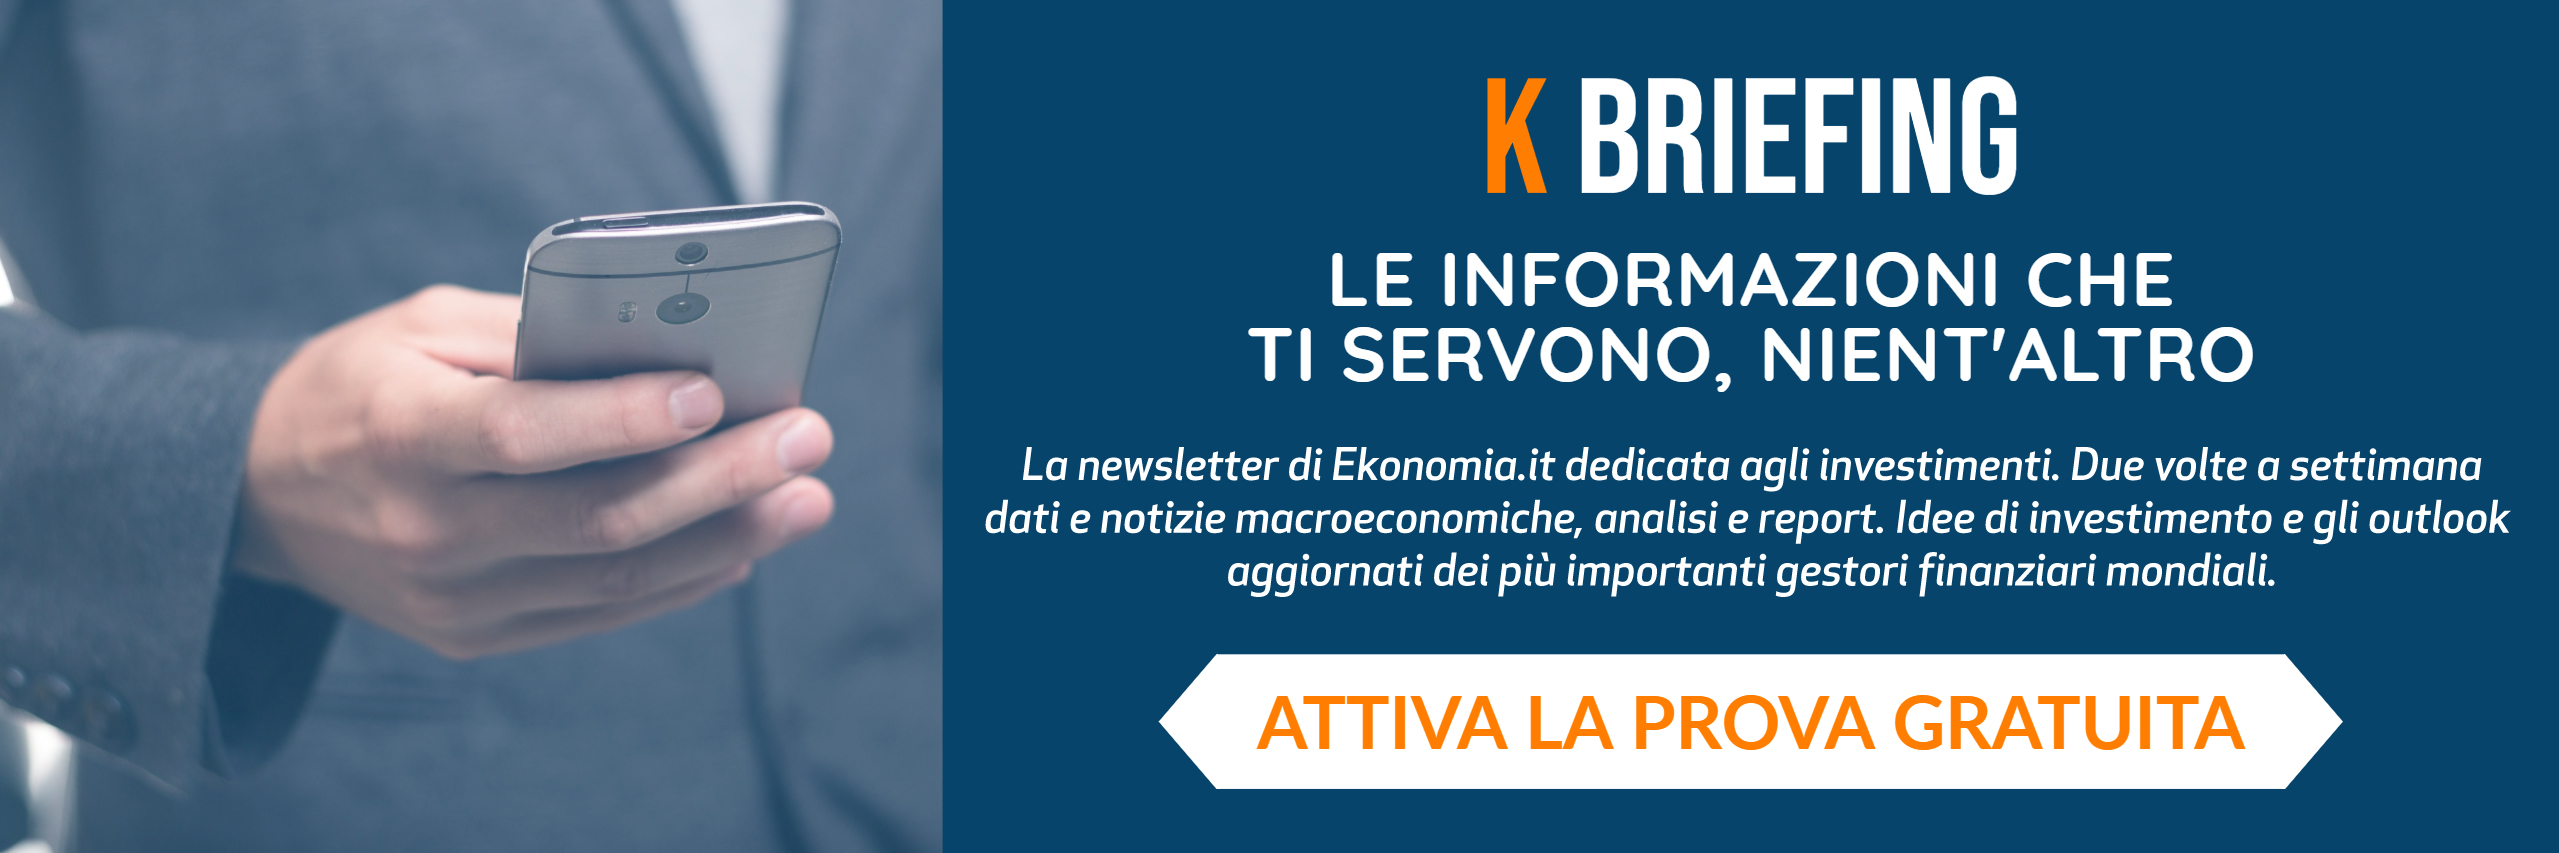 prova gratuitamente la newsletter k briefing